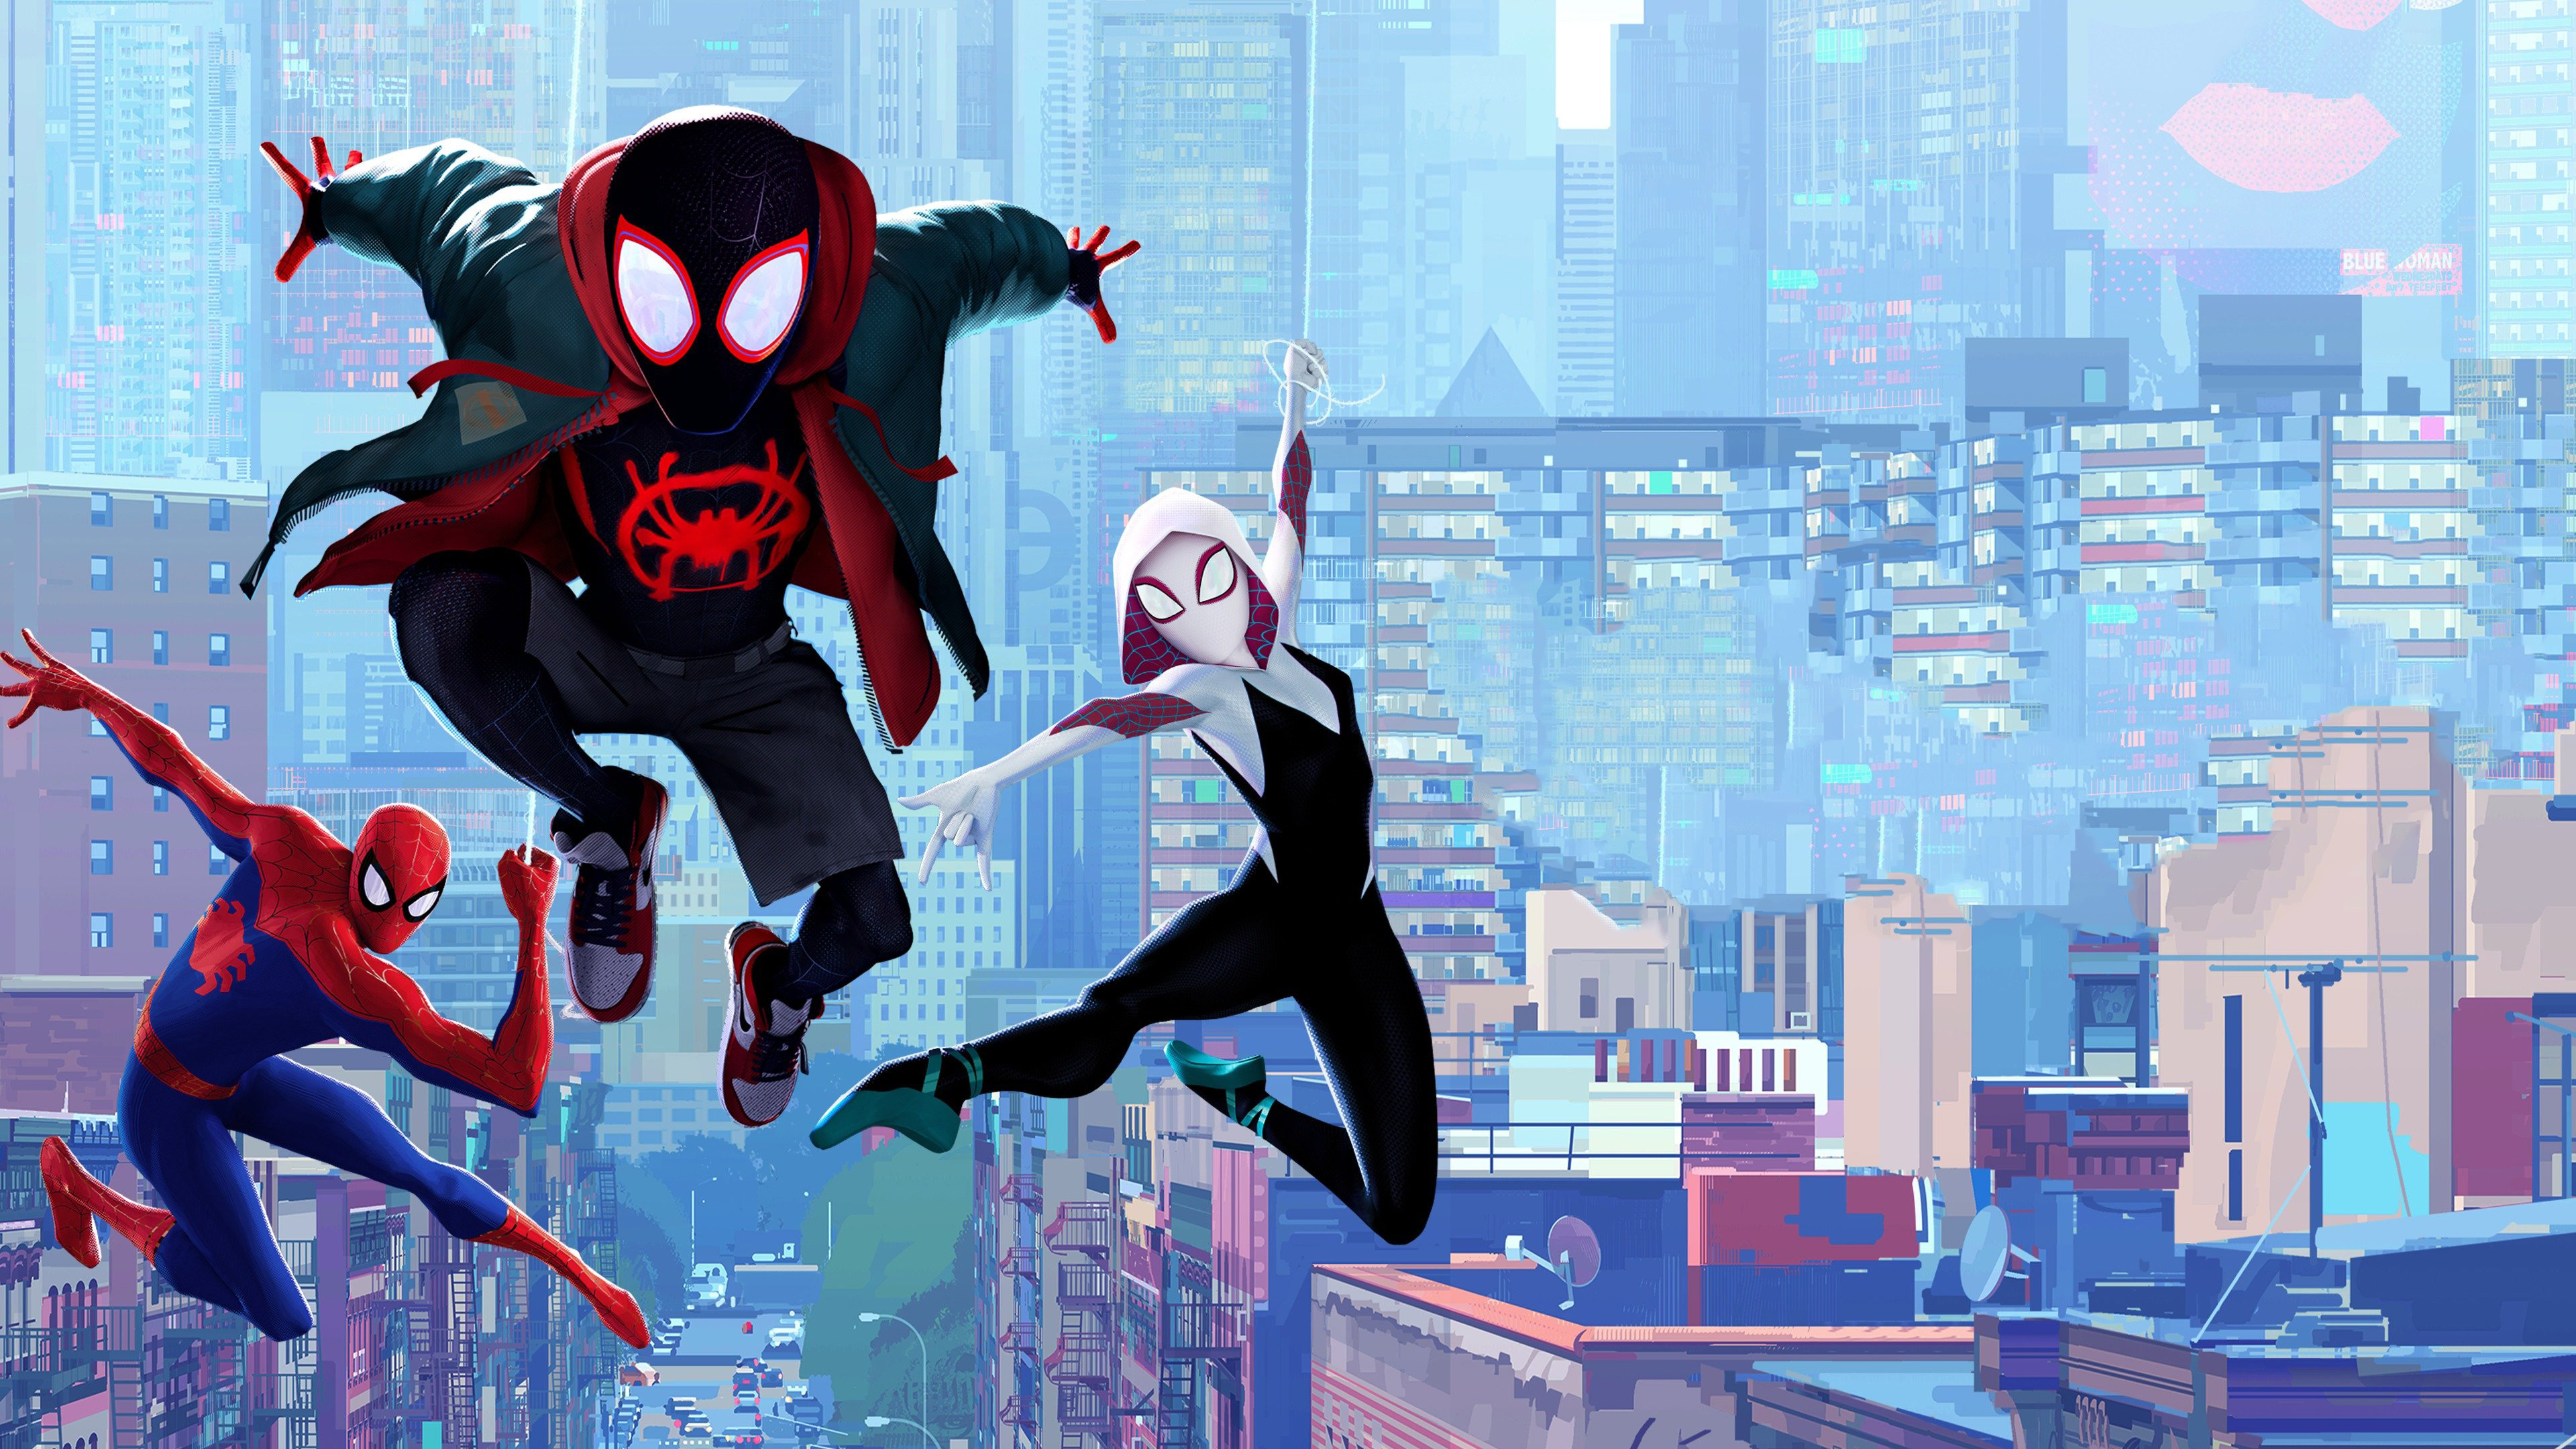 Wallpaper 4k Spider Verse 4k 4k Wallpapers Hd Wallpapers Movies